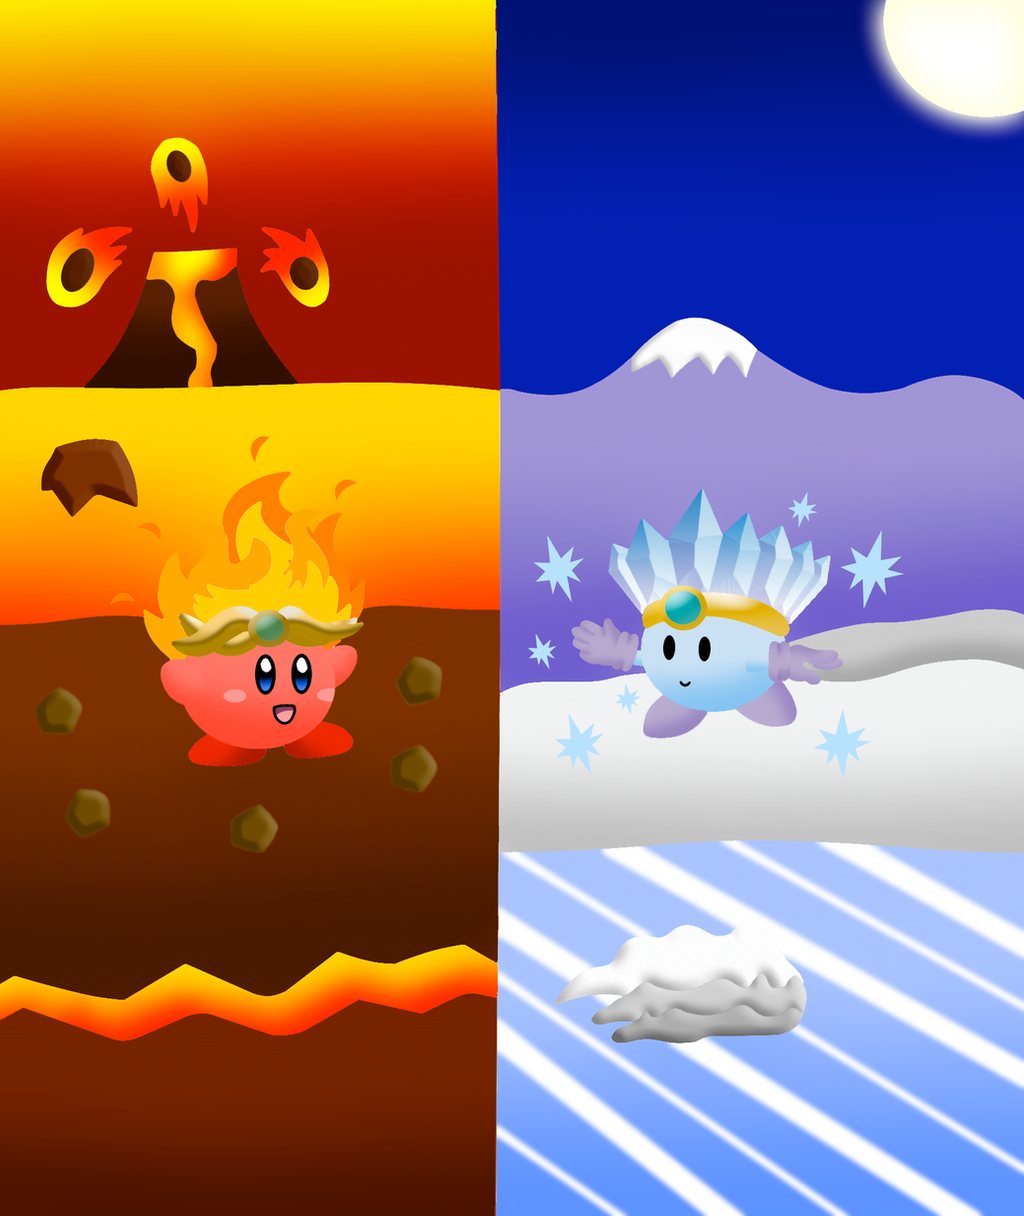 Kirby Fire Fire kirby and ice chopper by